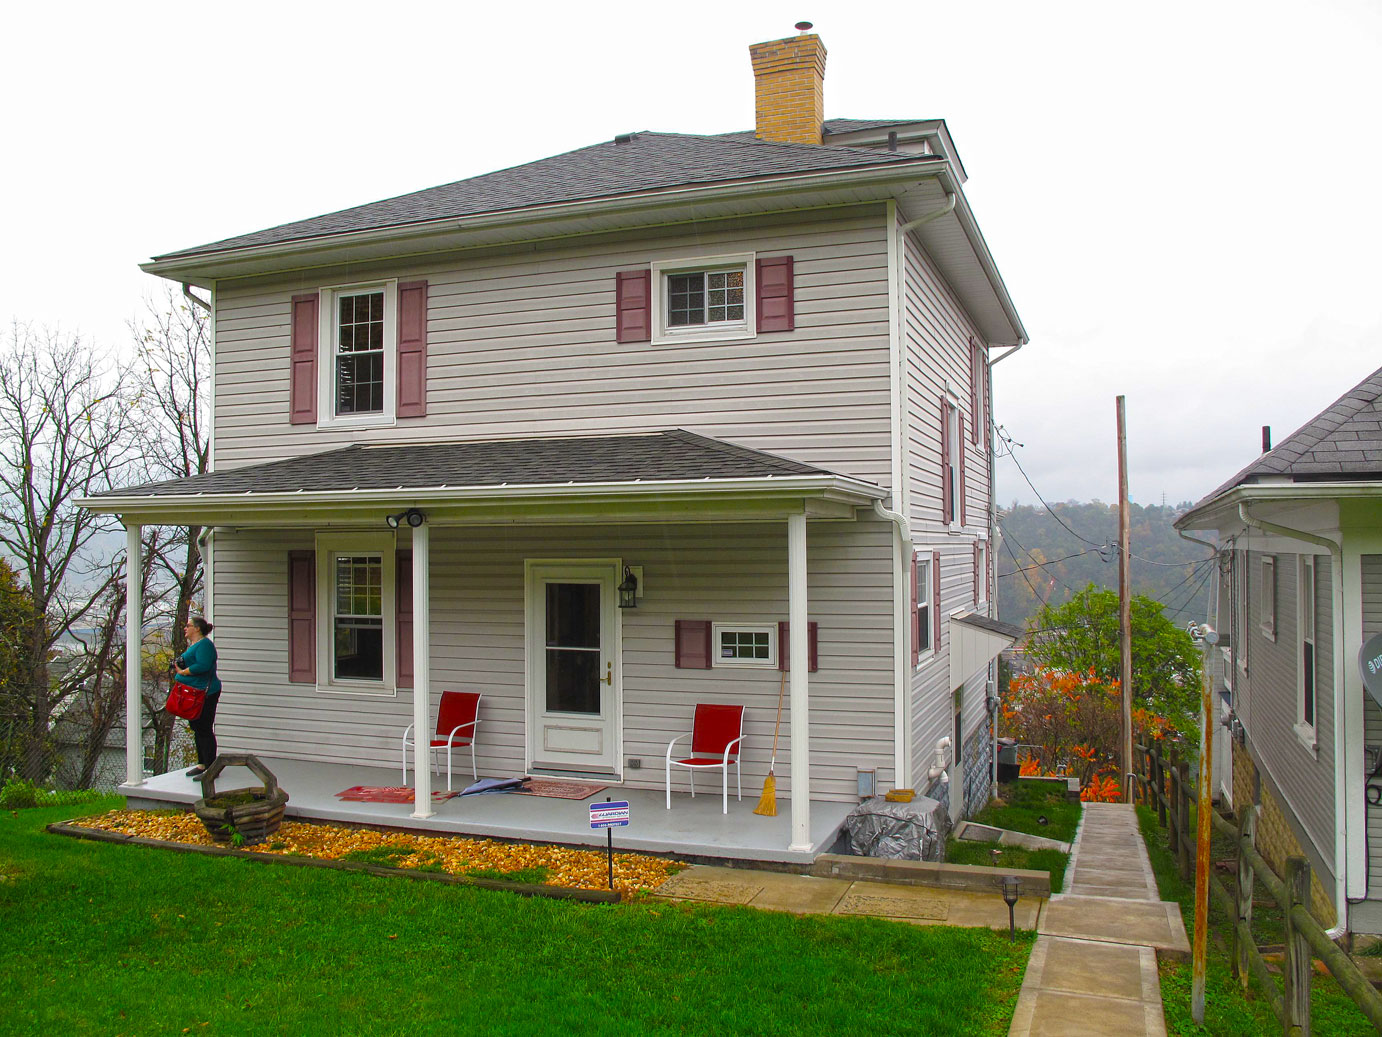 Charleroi house tour April 7 features program that offers up to $10K homebuying cash